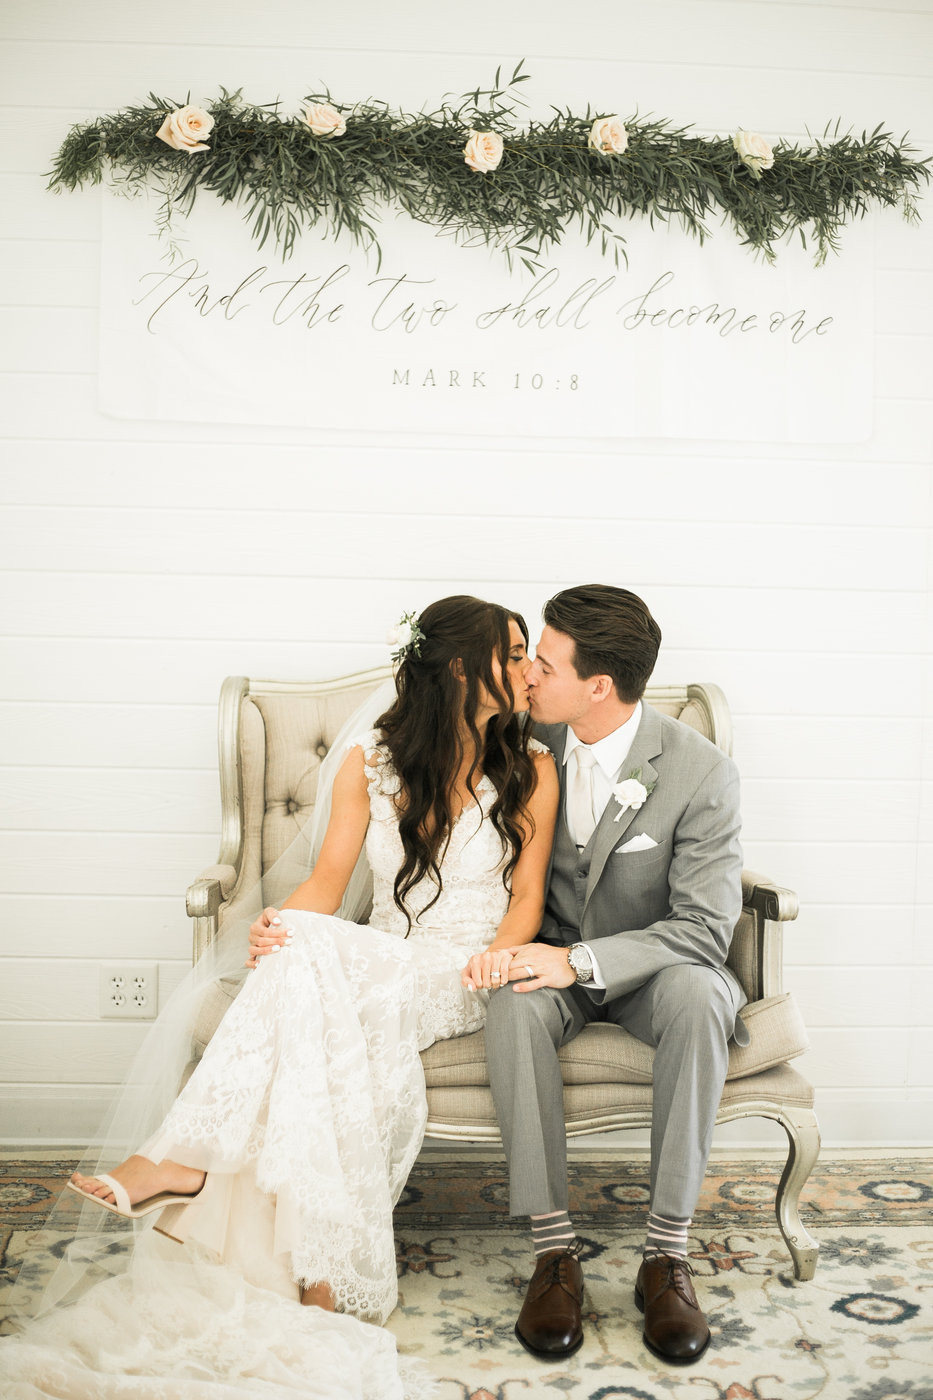 bride and groom kissing on couch with mark 10:8 scripture banner sign and greenery hung on shiplap wall at ashton hill